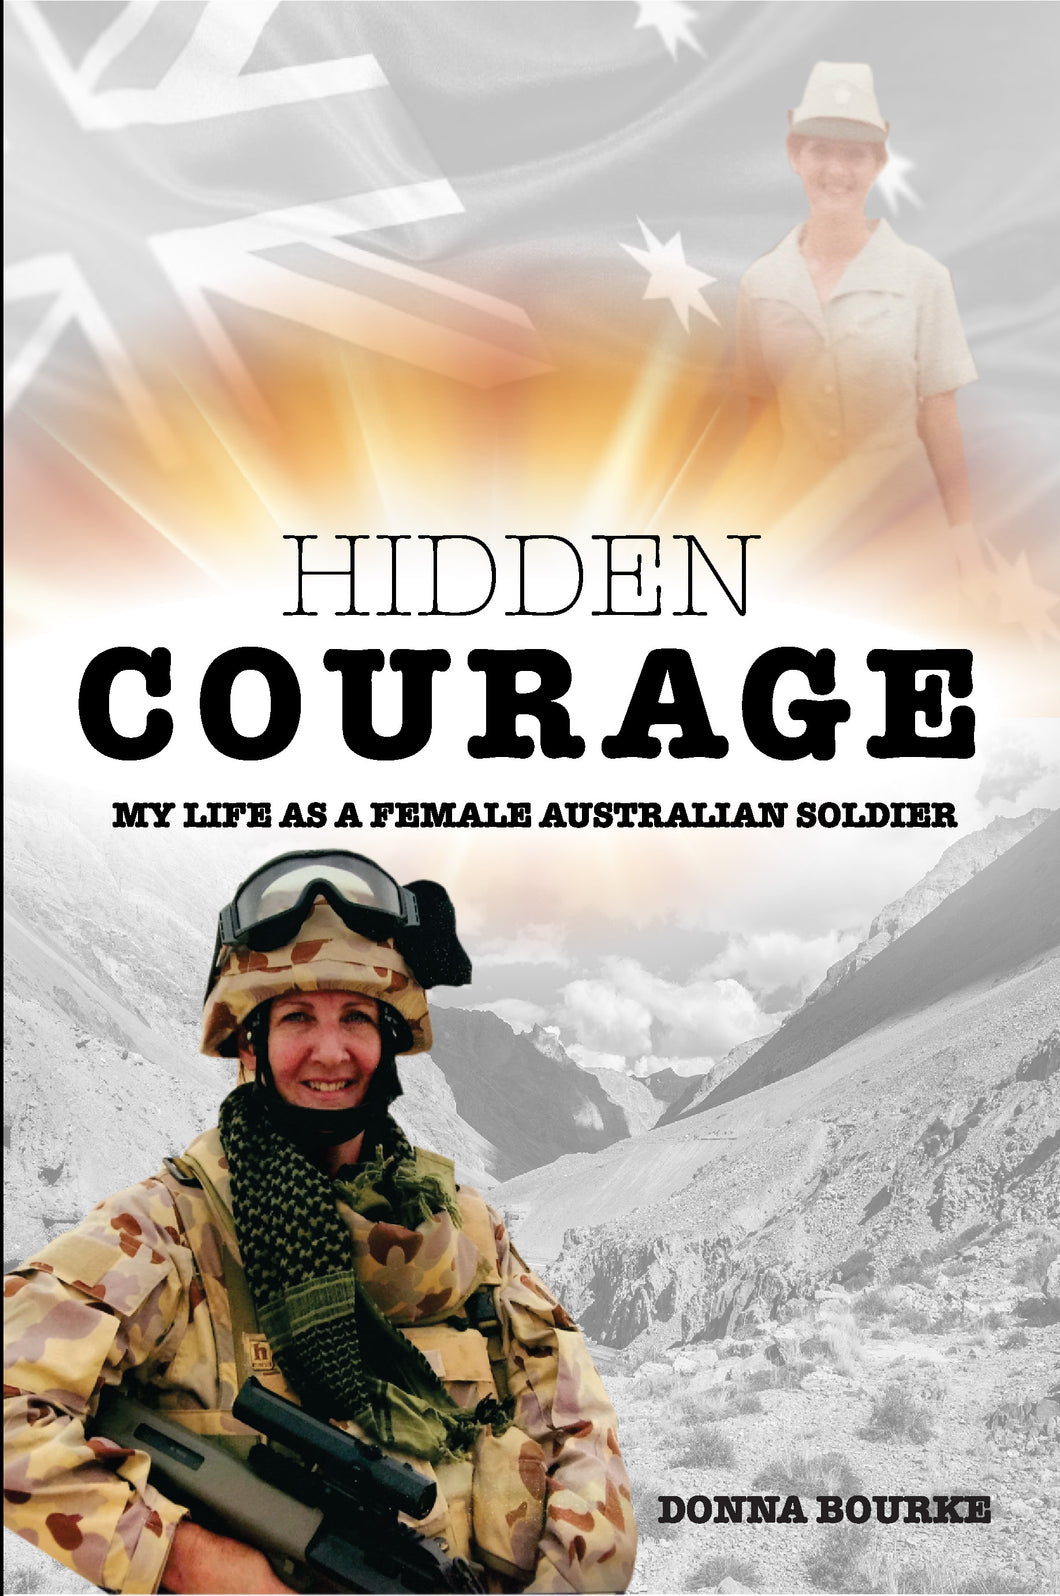 Hidden Courage: My Life as a Female Australian Soldier